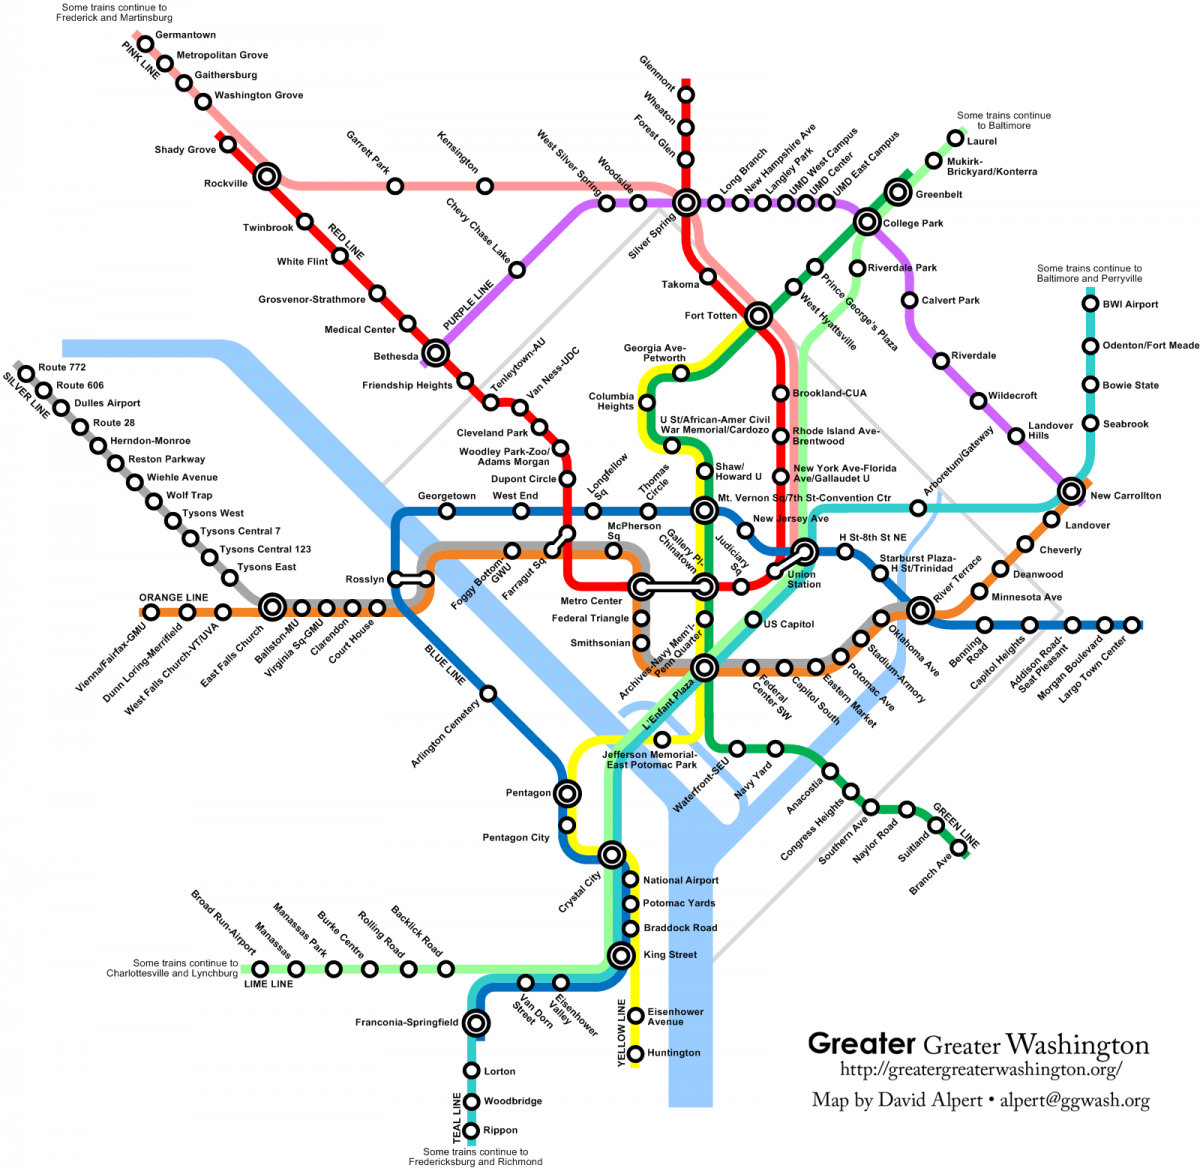 Legal Crossing In Boston Subway Map.Ggwash Sandbox For Hq2 In Crystal City Build The Metro Express